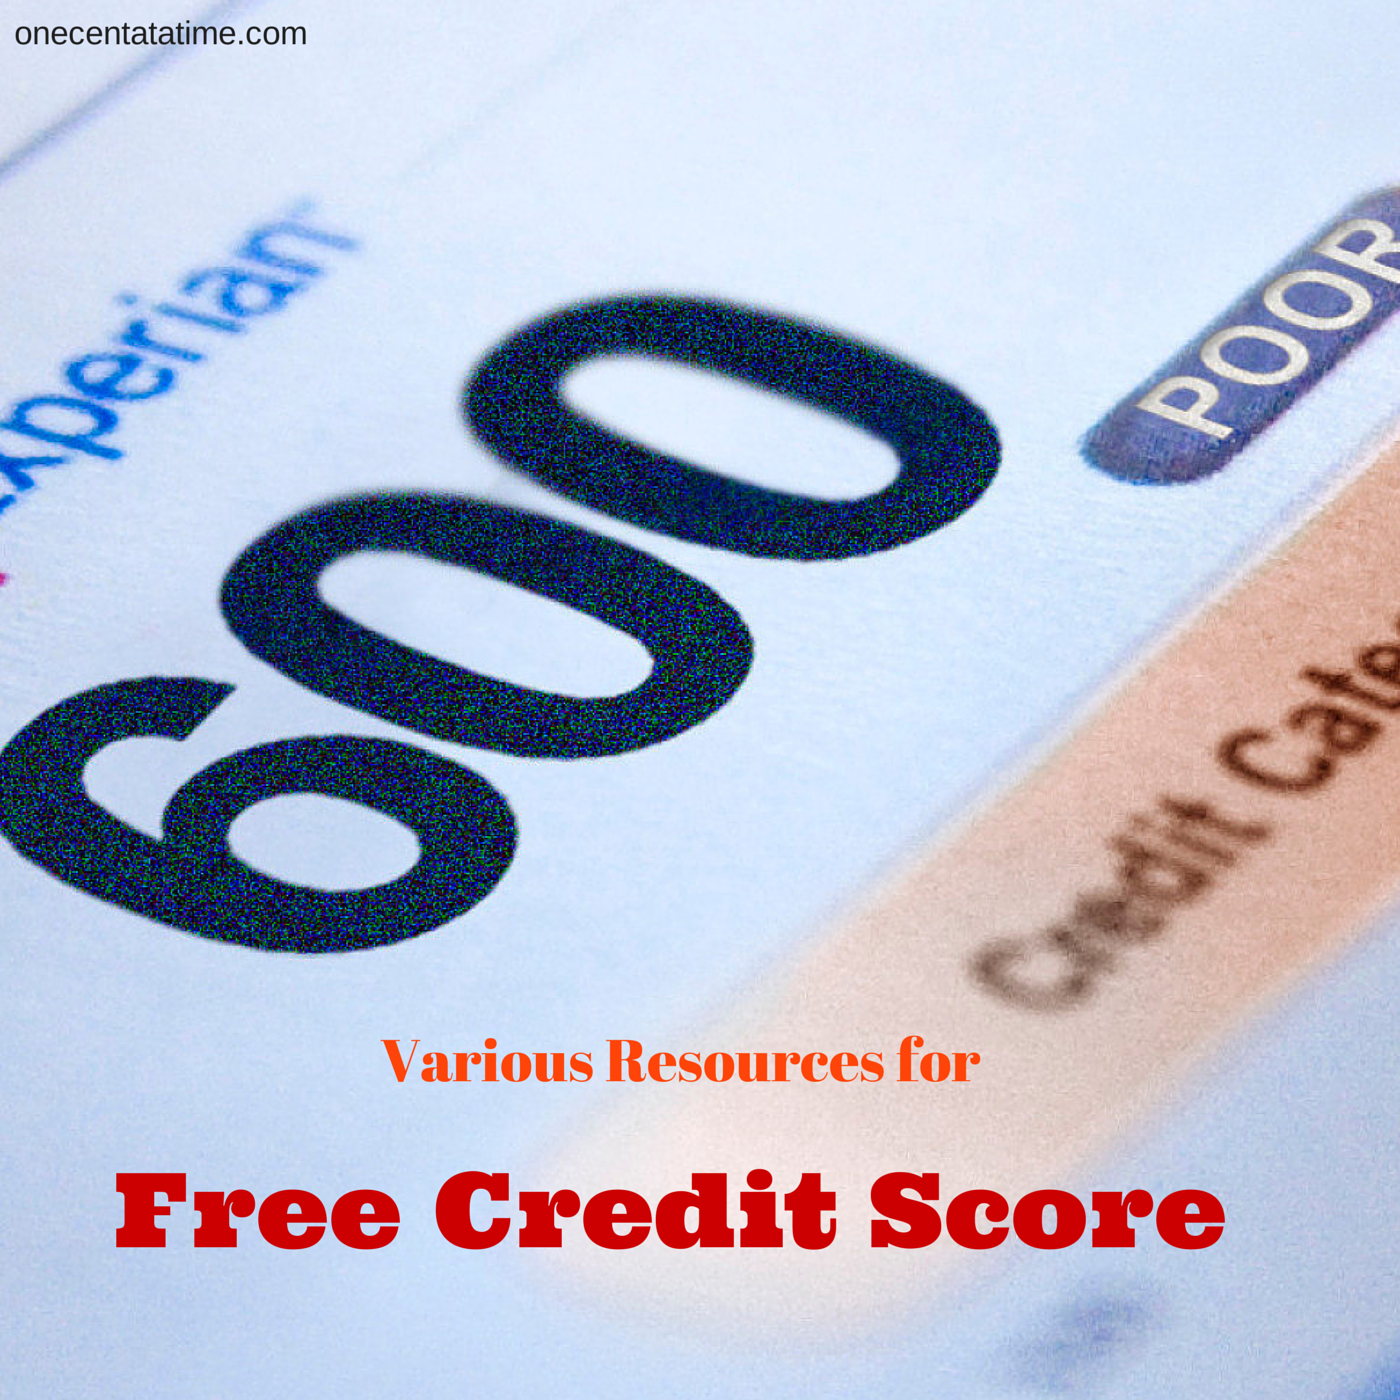 Resources for Free Credit Score